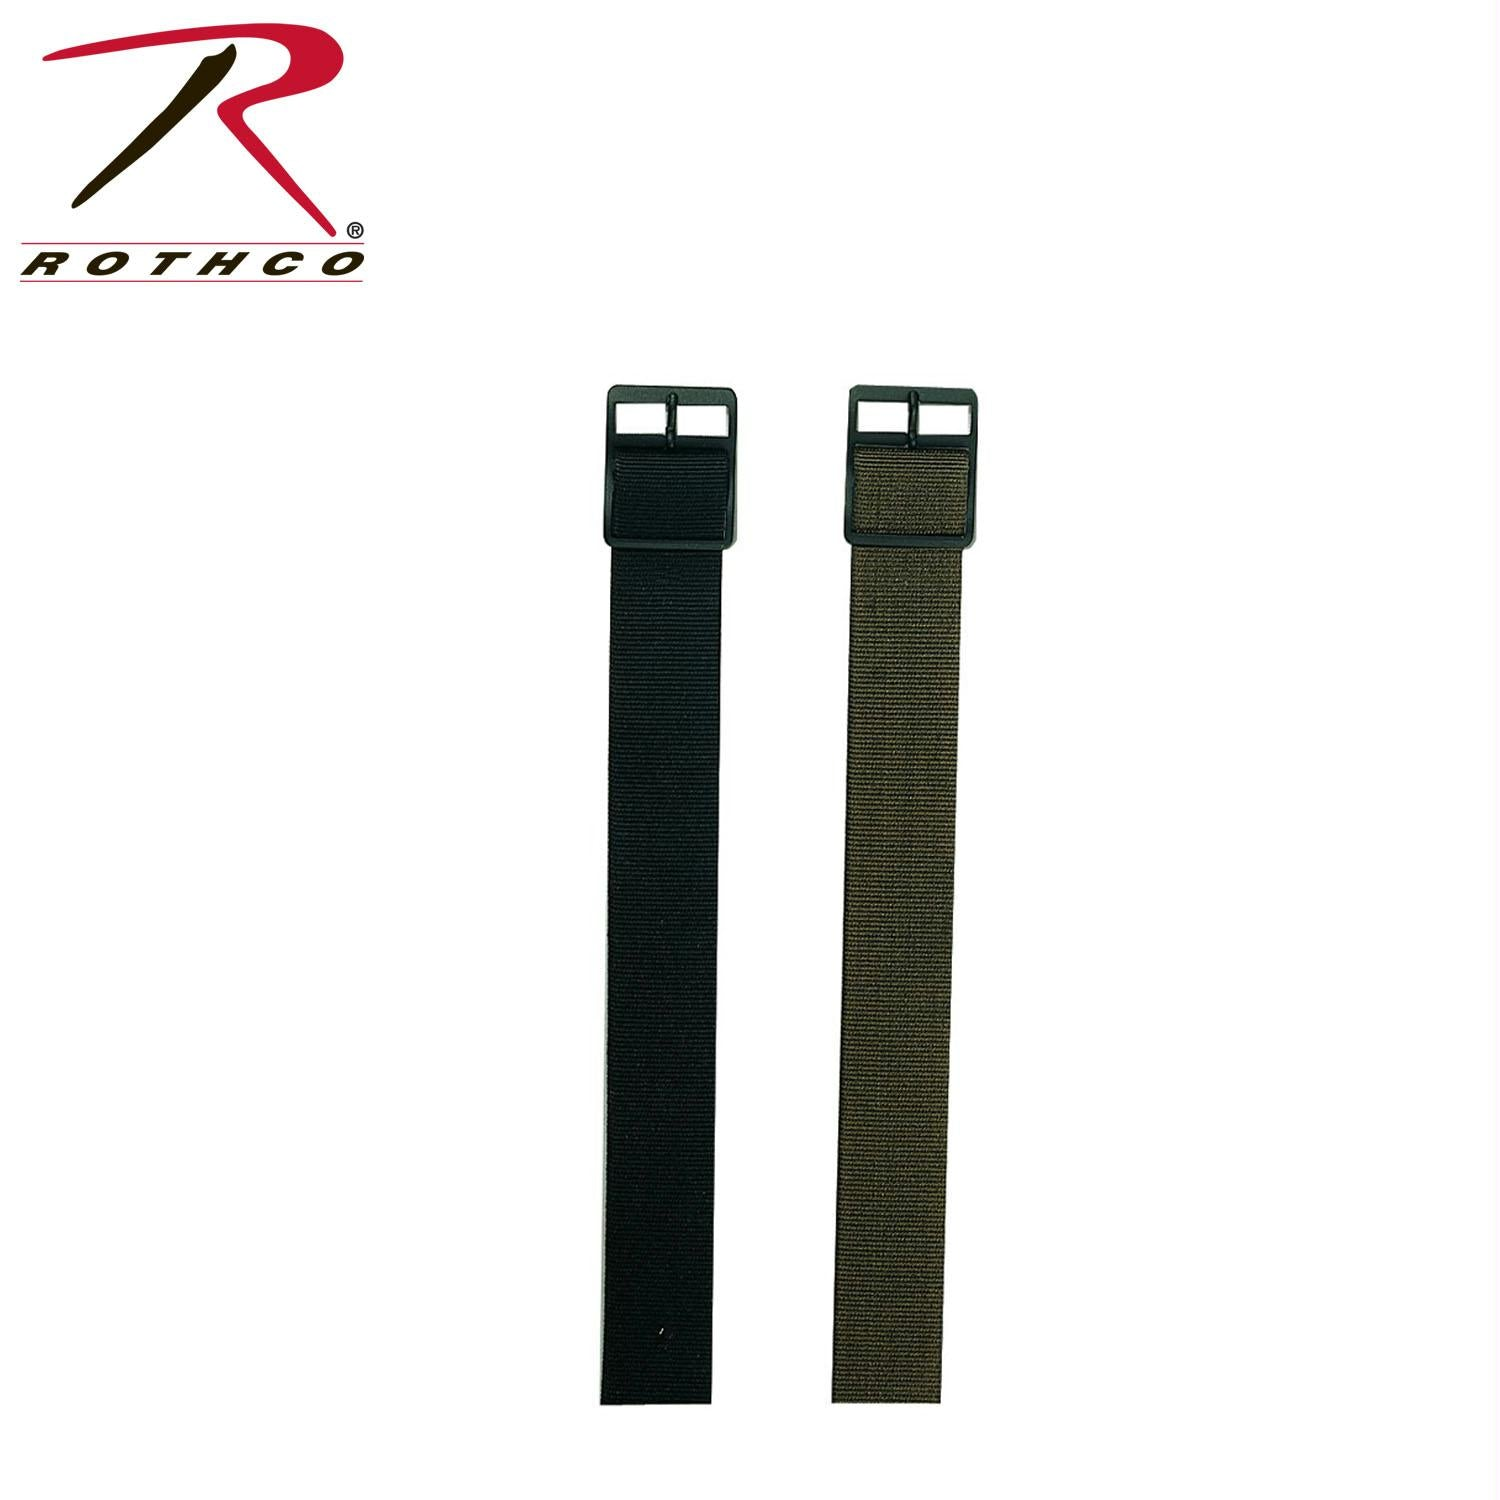 Rothco Military Watchbands